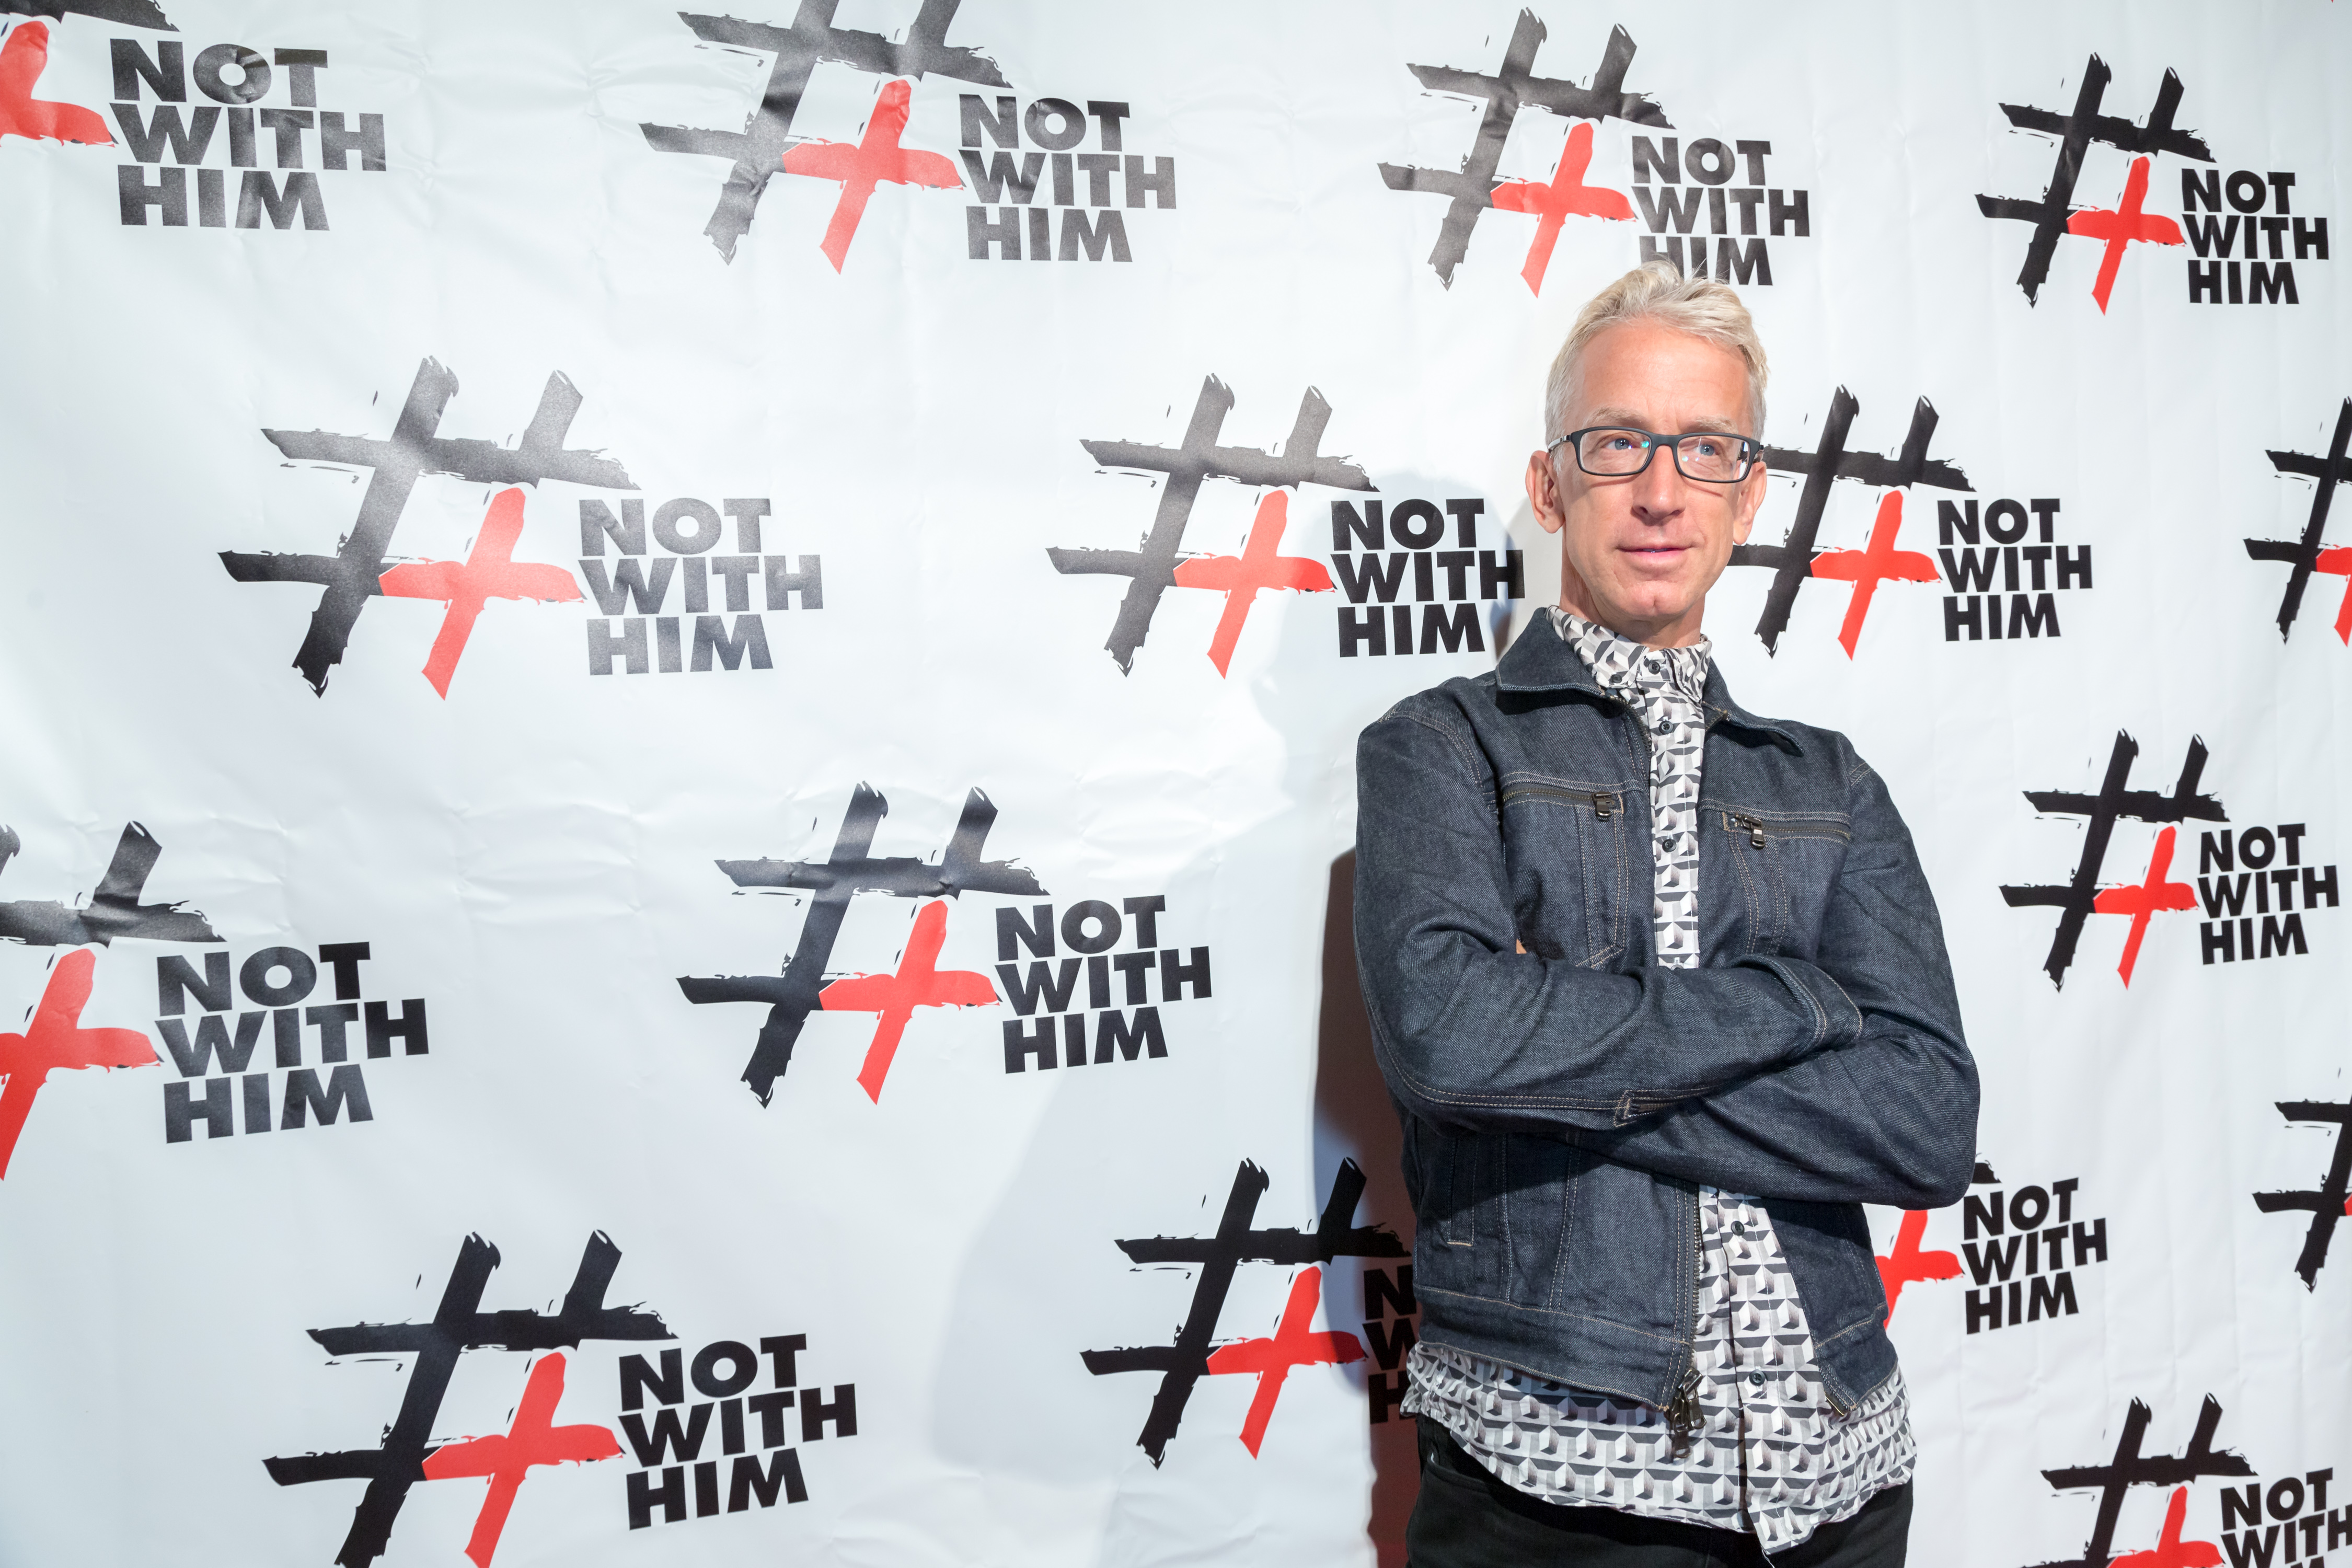 LOS ANGELES, CA - AUGUST 19: Comedian Andy Dick arrives at the #NotWithHim Event on August 19, 2016 in Los Angeles, California. (Photo by Greg Doherty/Getty Images)